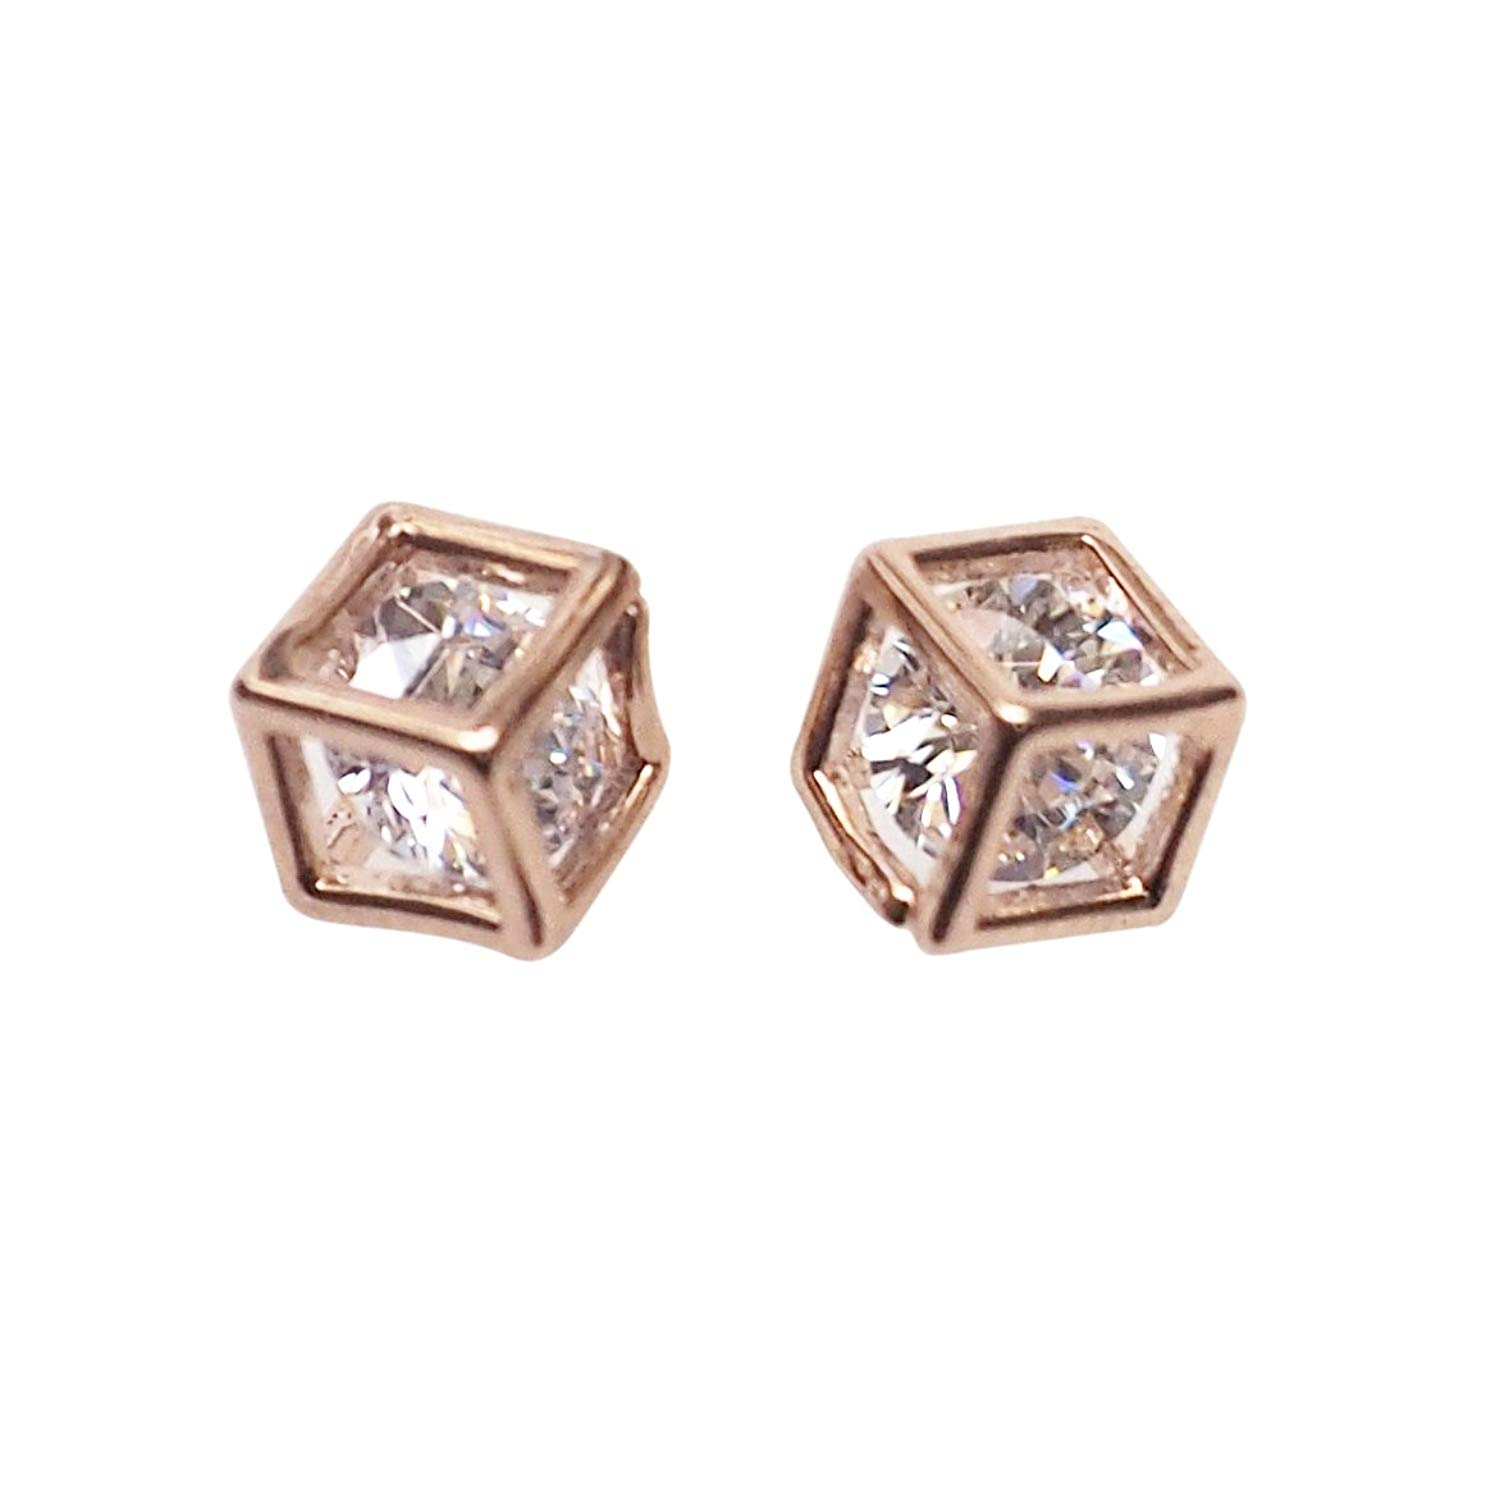 Miyabi Grace Women's Comfortable Stylish Cube Simple Cubic Zirconia Crystal Invisible Clip On Stud Earrings Rose gold tone